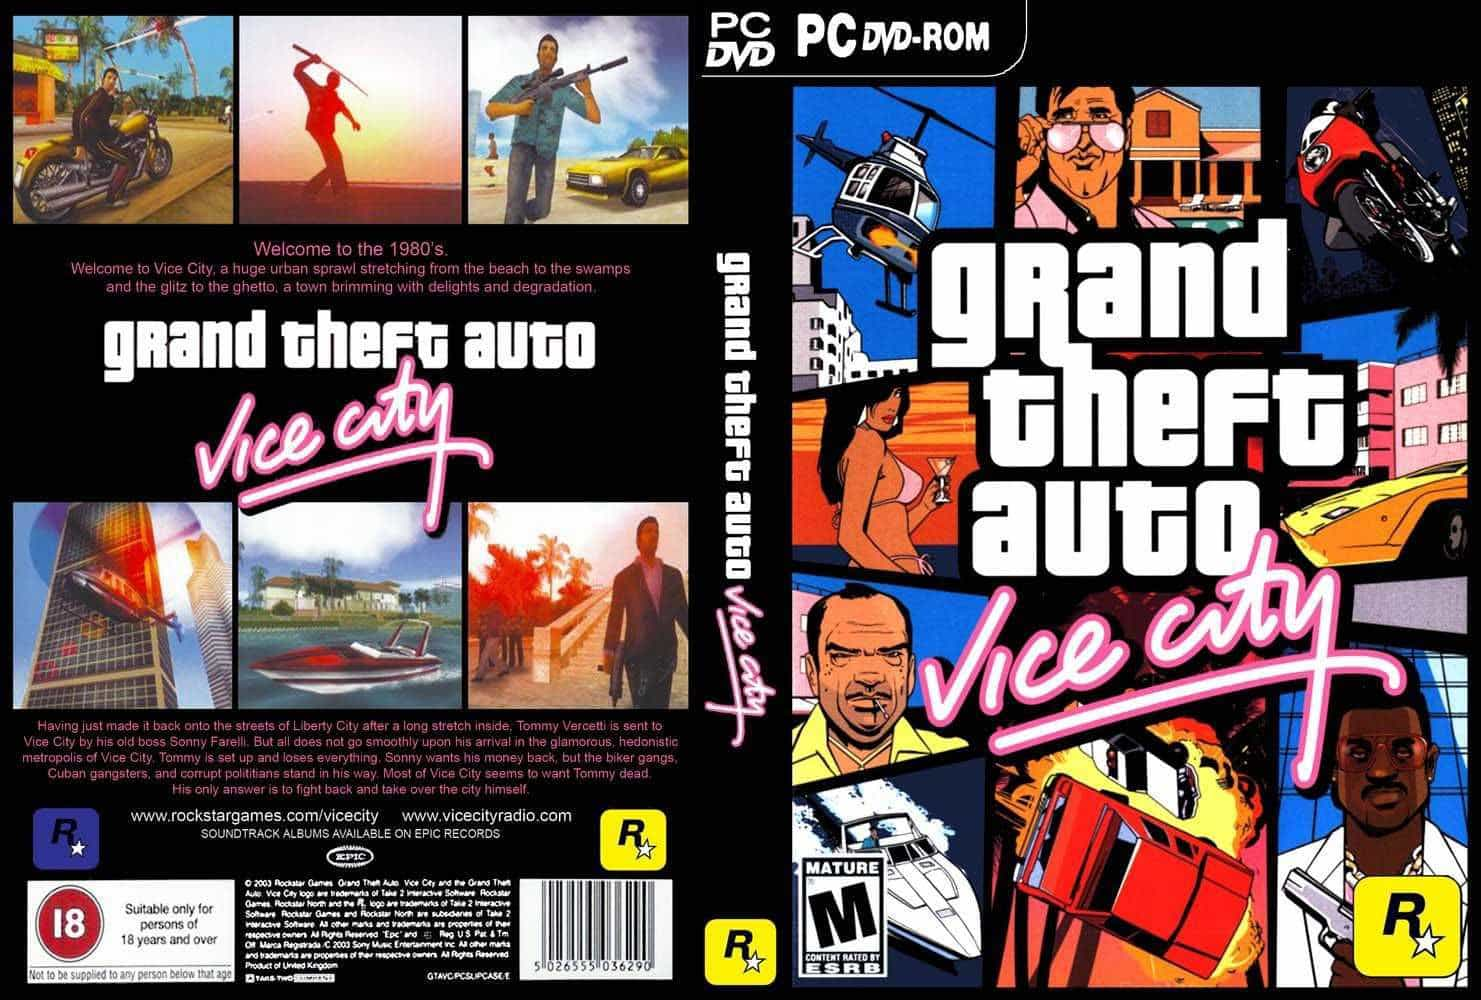 Grand theft auto: vice city game mod gta: police stories v. Iv.